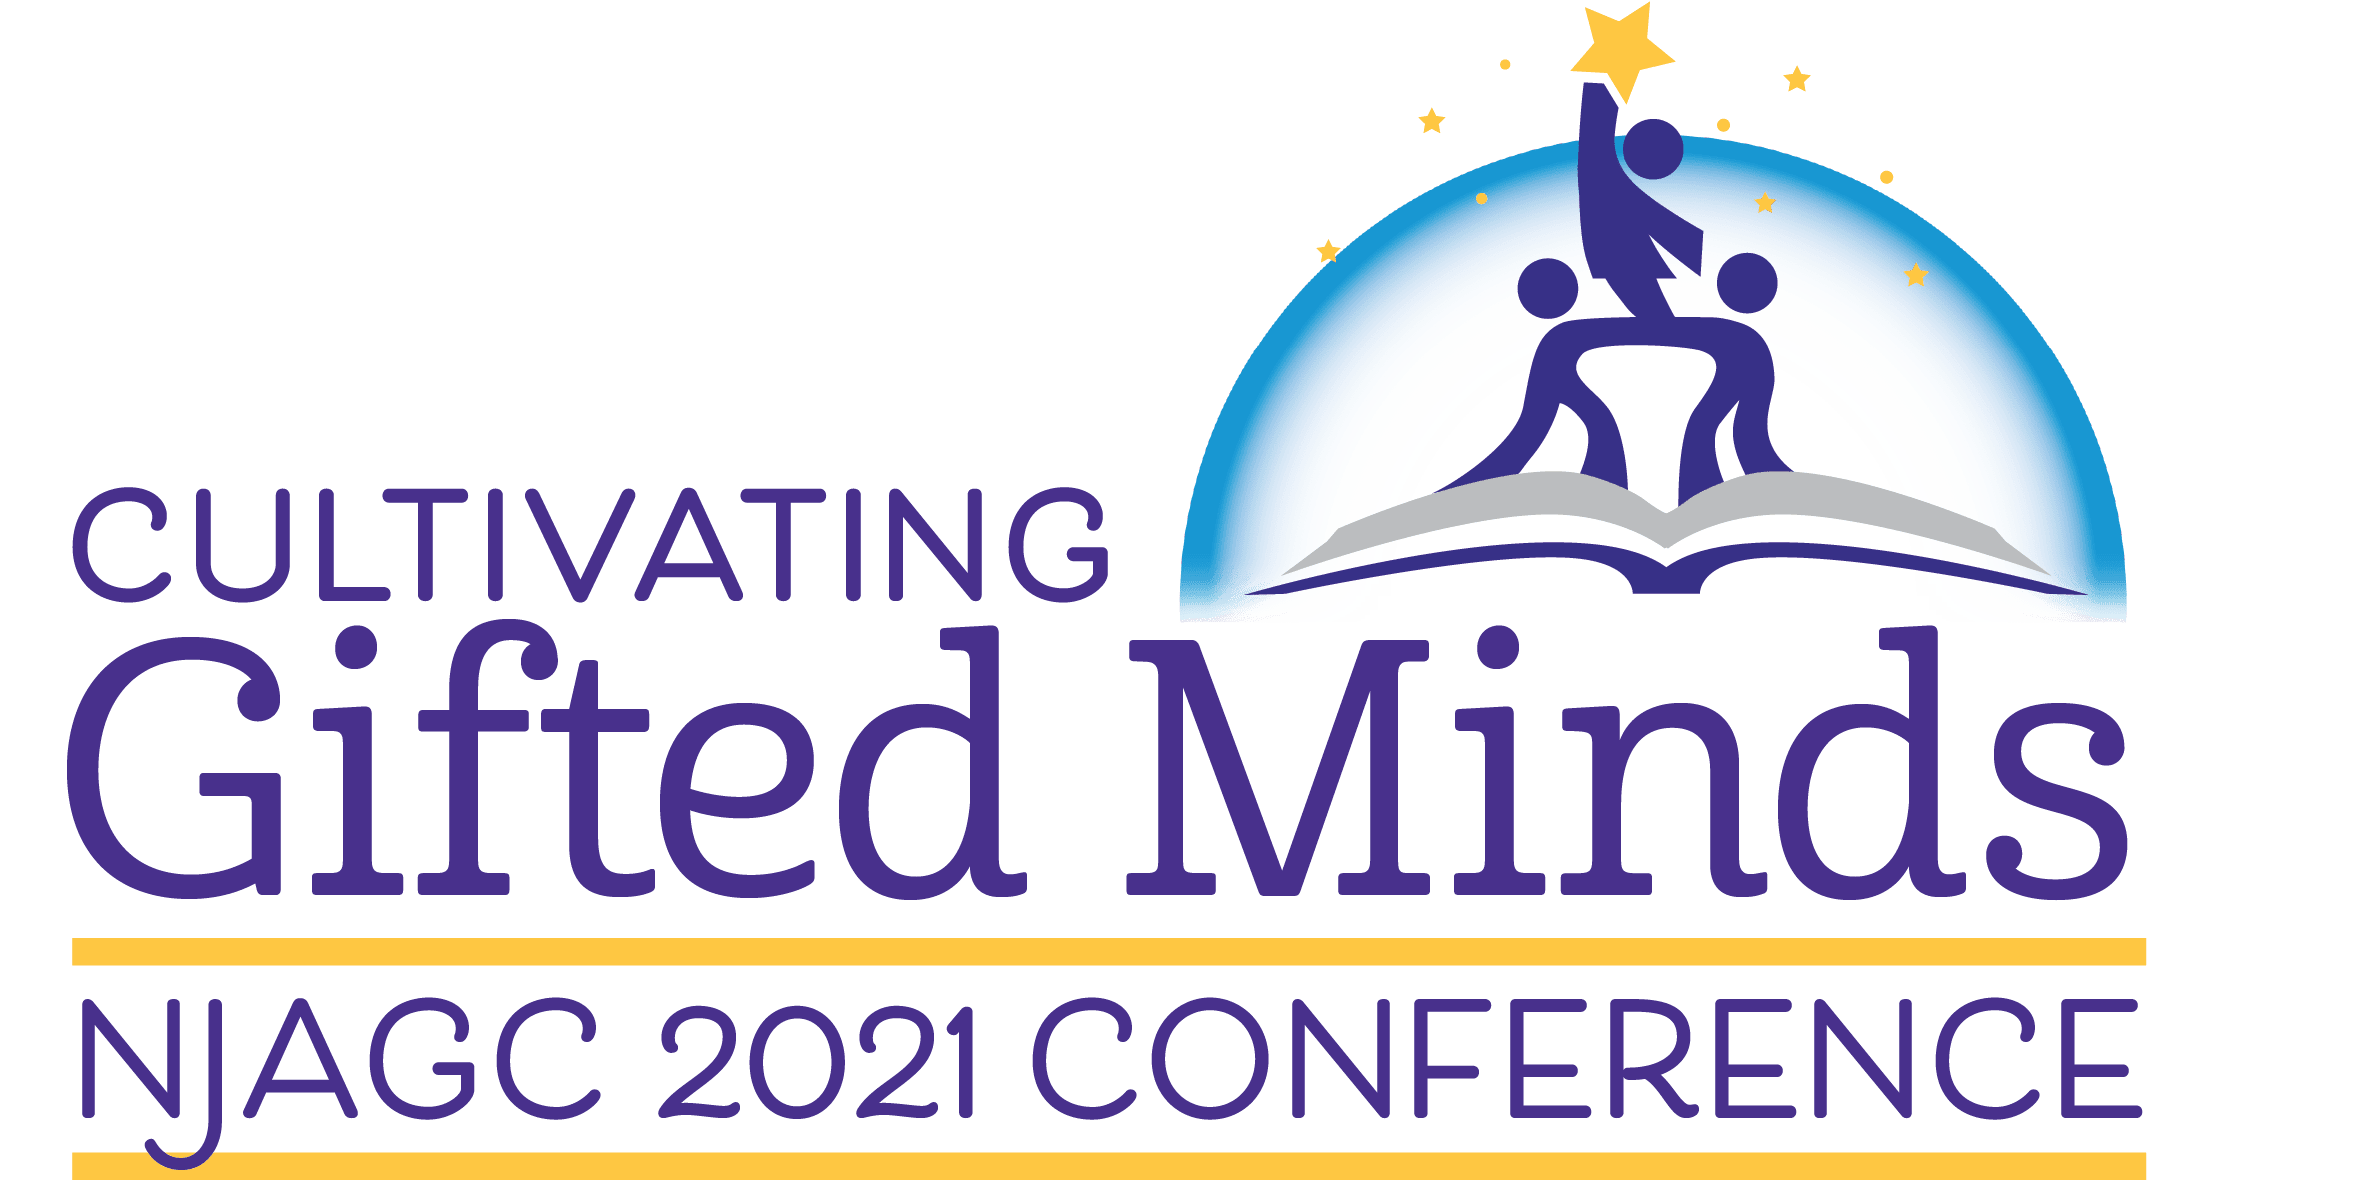 New Jersey Association for Gifted Children 2021 Conference